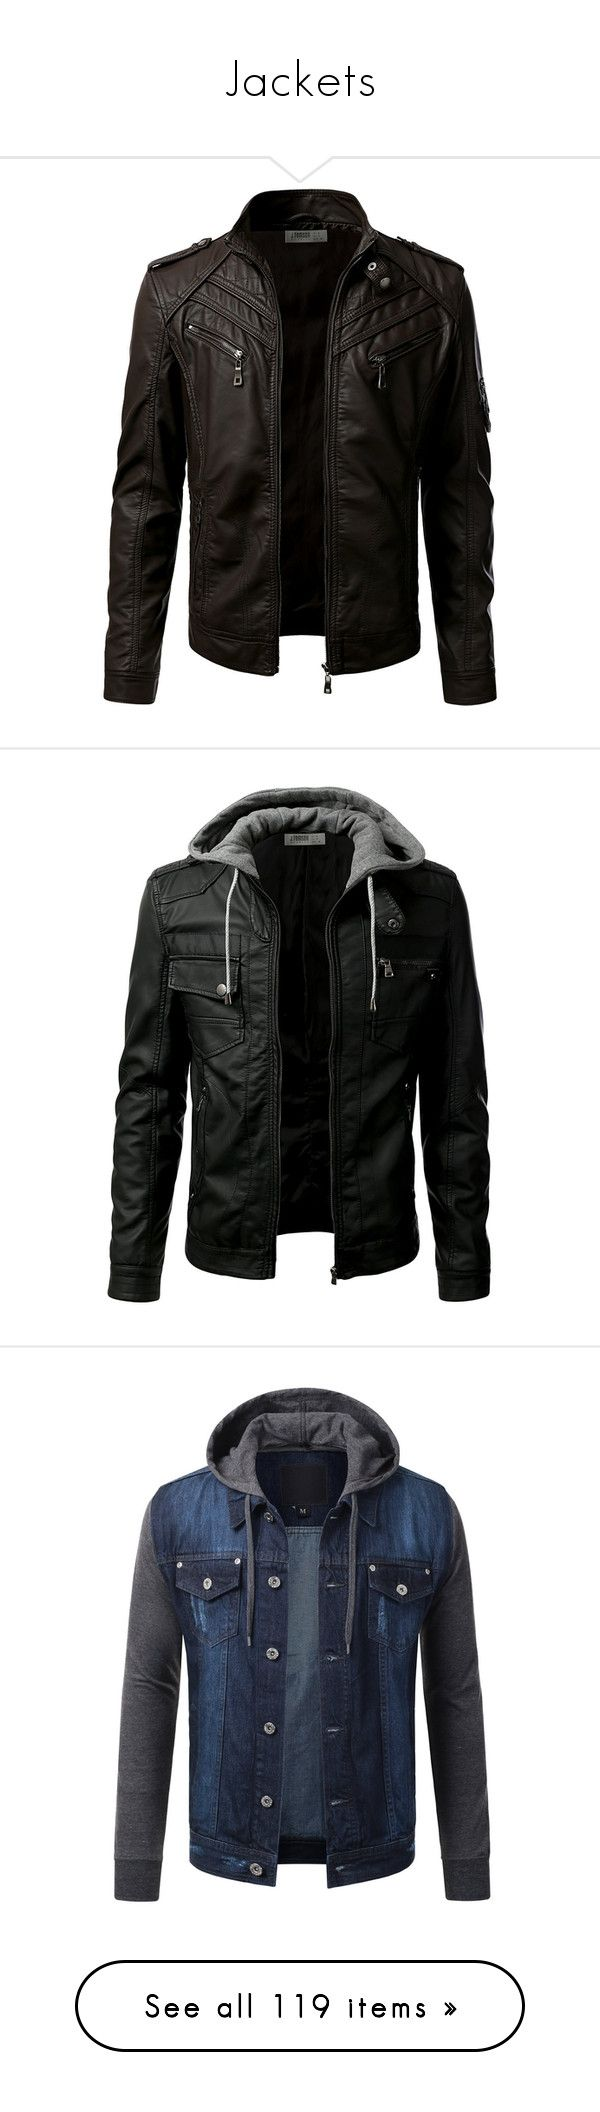 """Jackets"" by curiousgamer ❤ liked on Polyvore featuring men's fashion, men's clothing, men's outerwear, men's jackets, mens blouson jacket, mens flight jacket, mens pleather jacket, mens bomber jacket, mens jackets and mens hooded denim jacket"